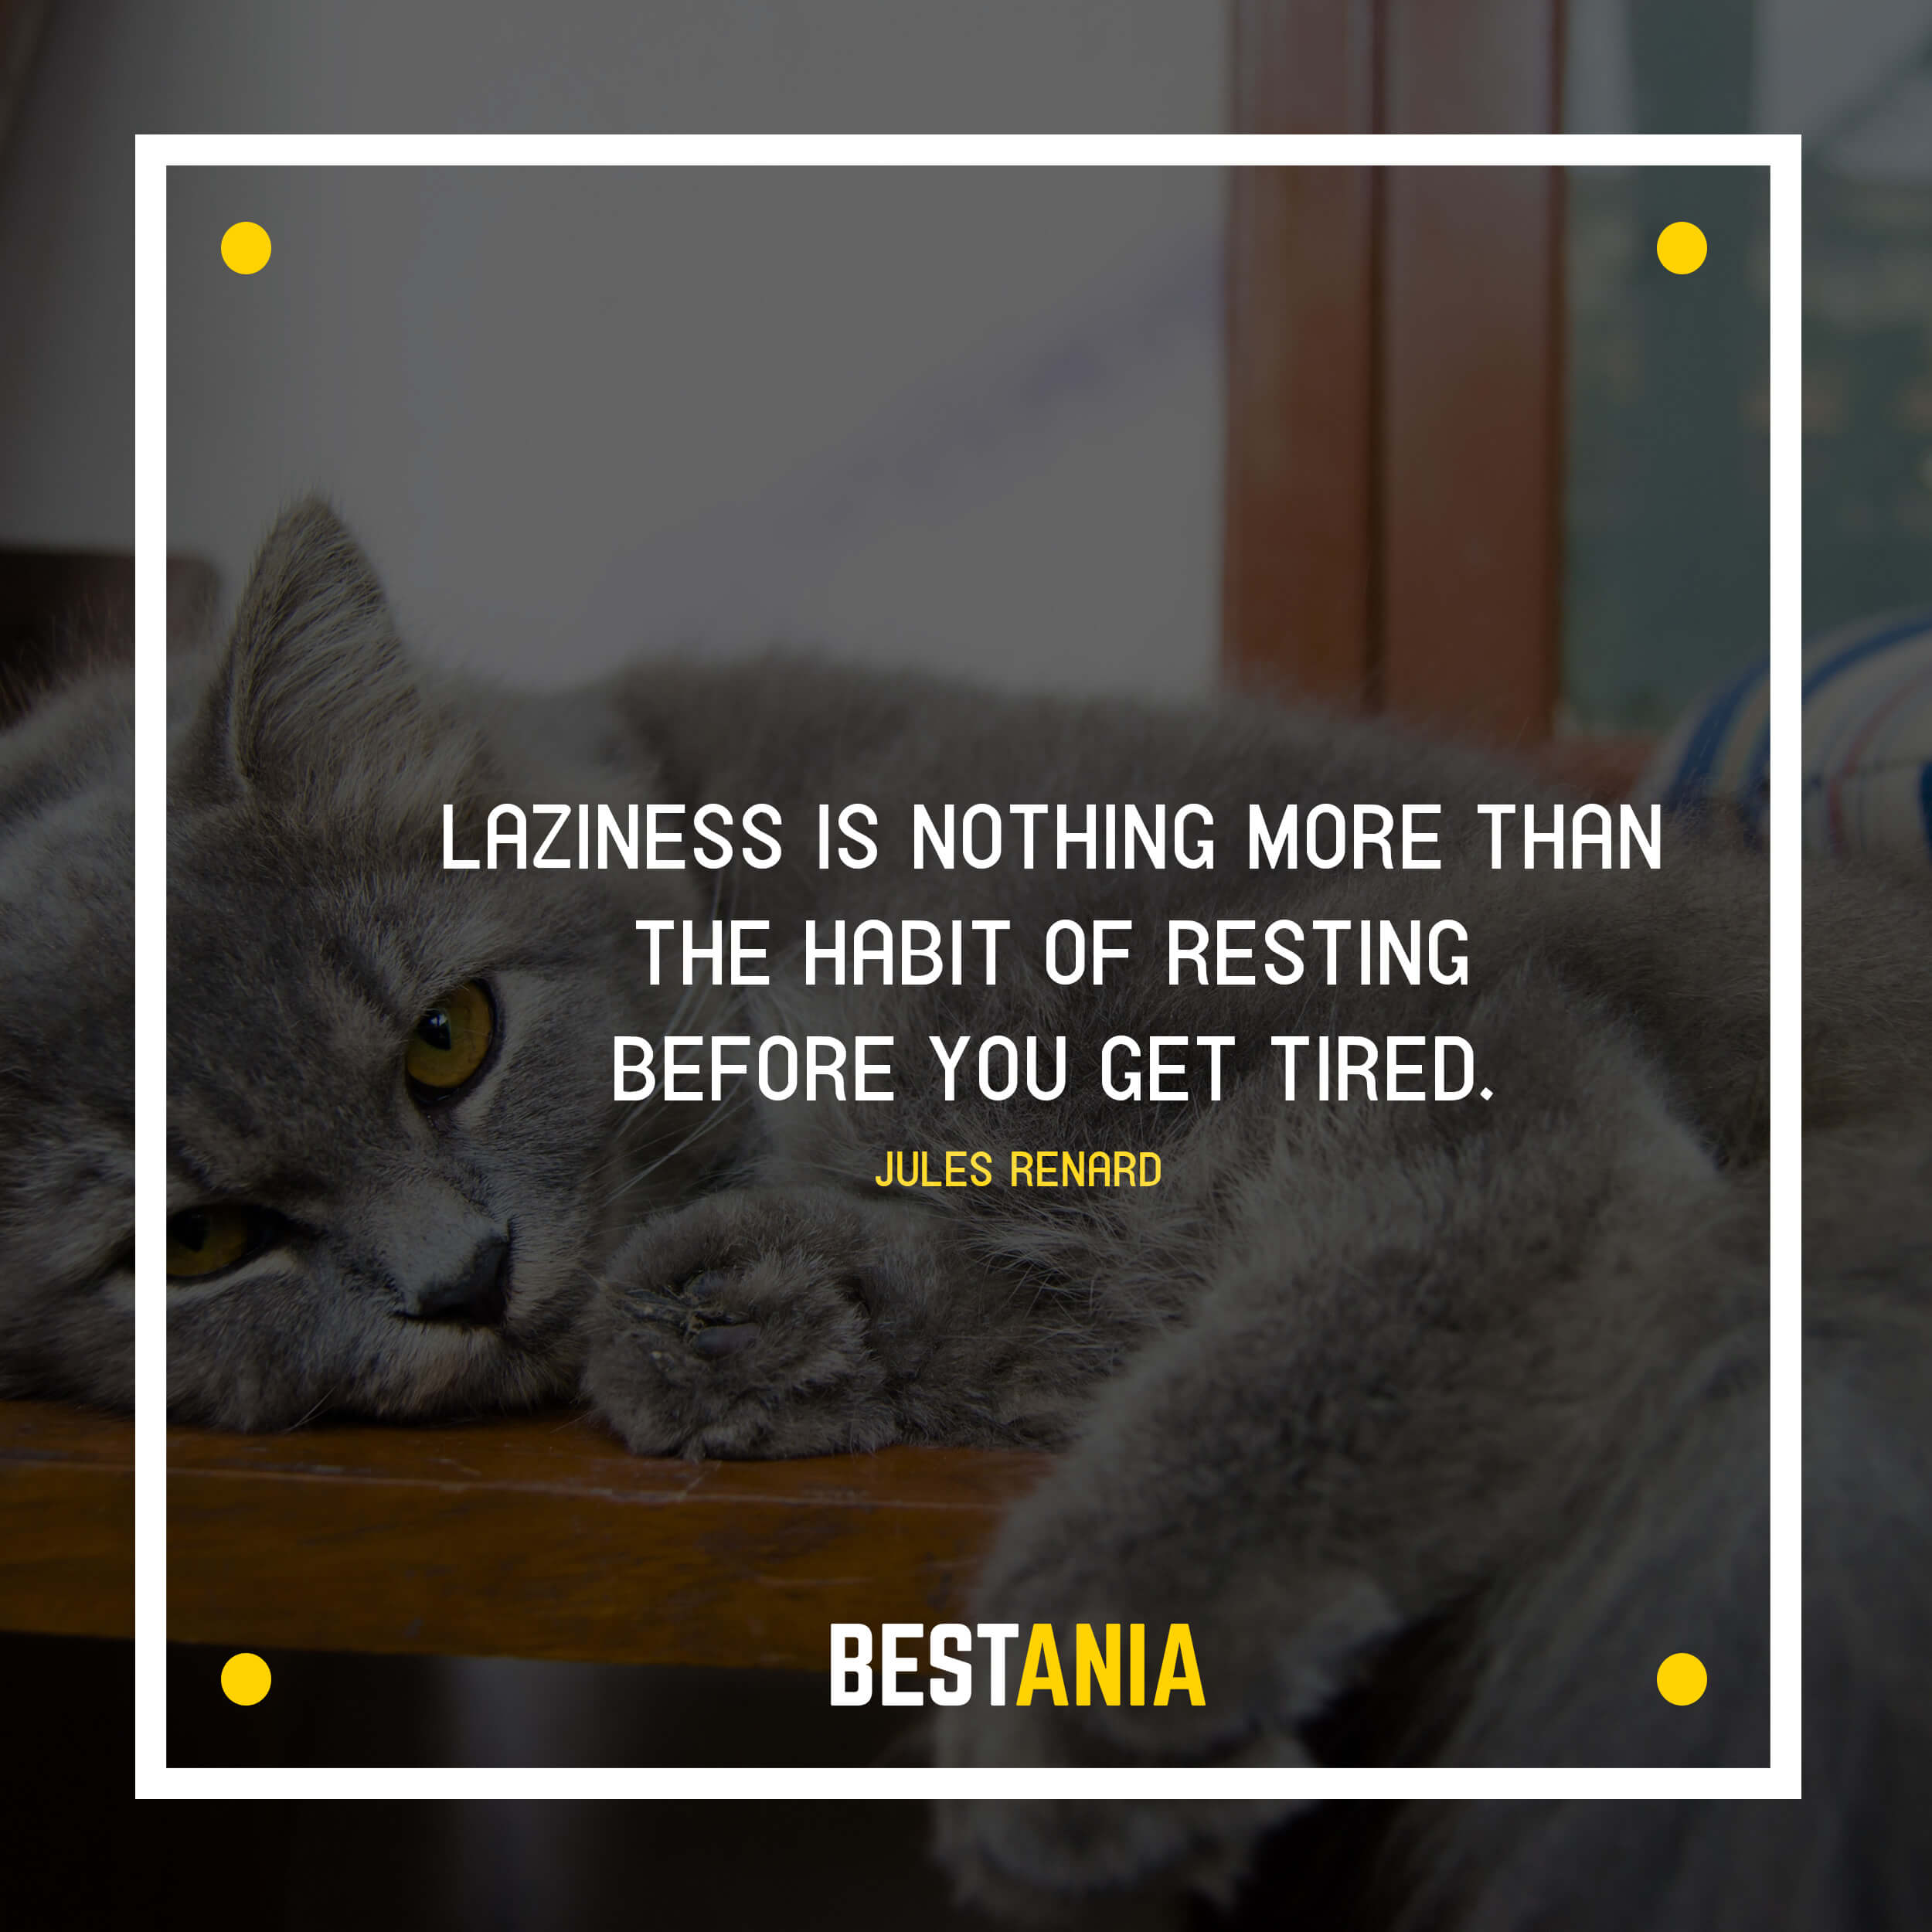 """LAZINESS IS NOTHING MORE THAN THE HABIT OF RESTING BEFORE YOU GET TIRED.""  JULES RENARD"